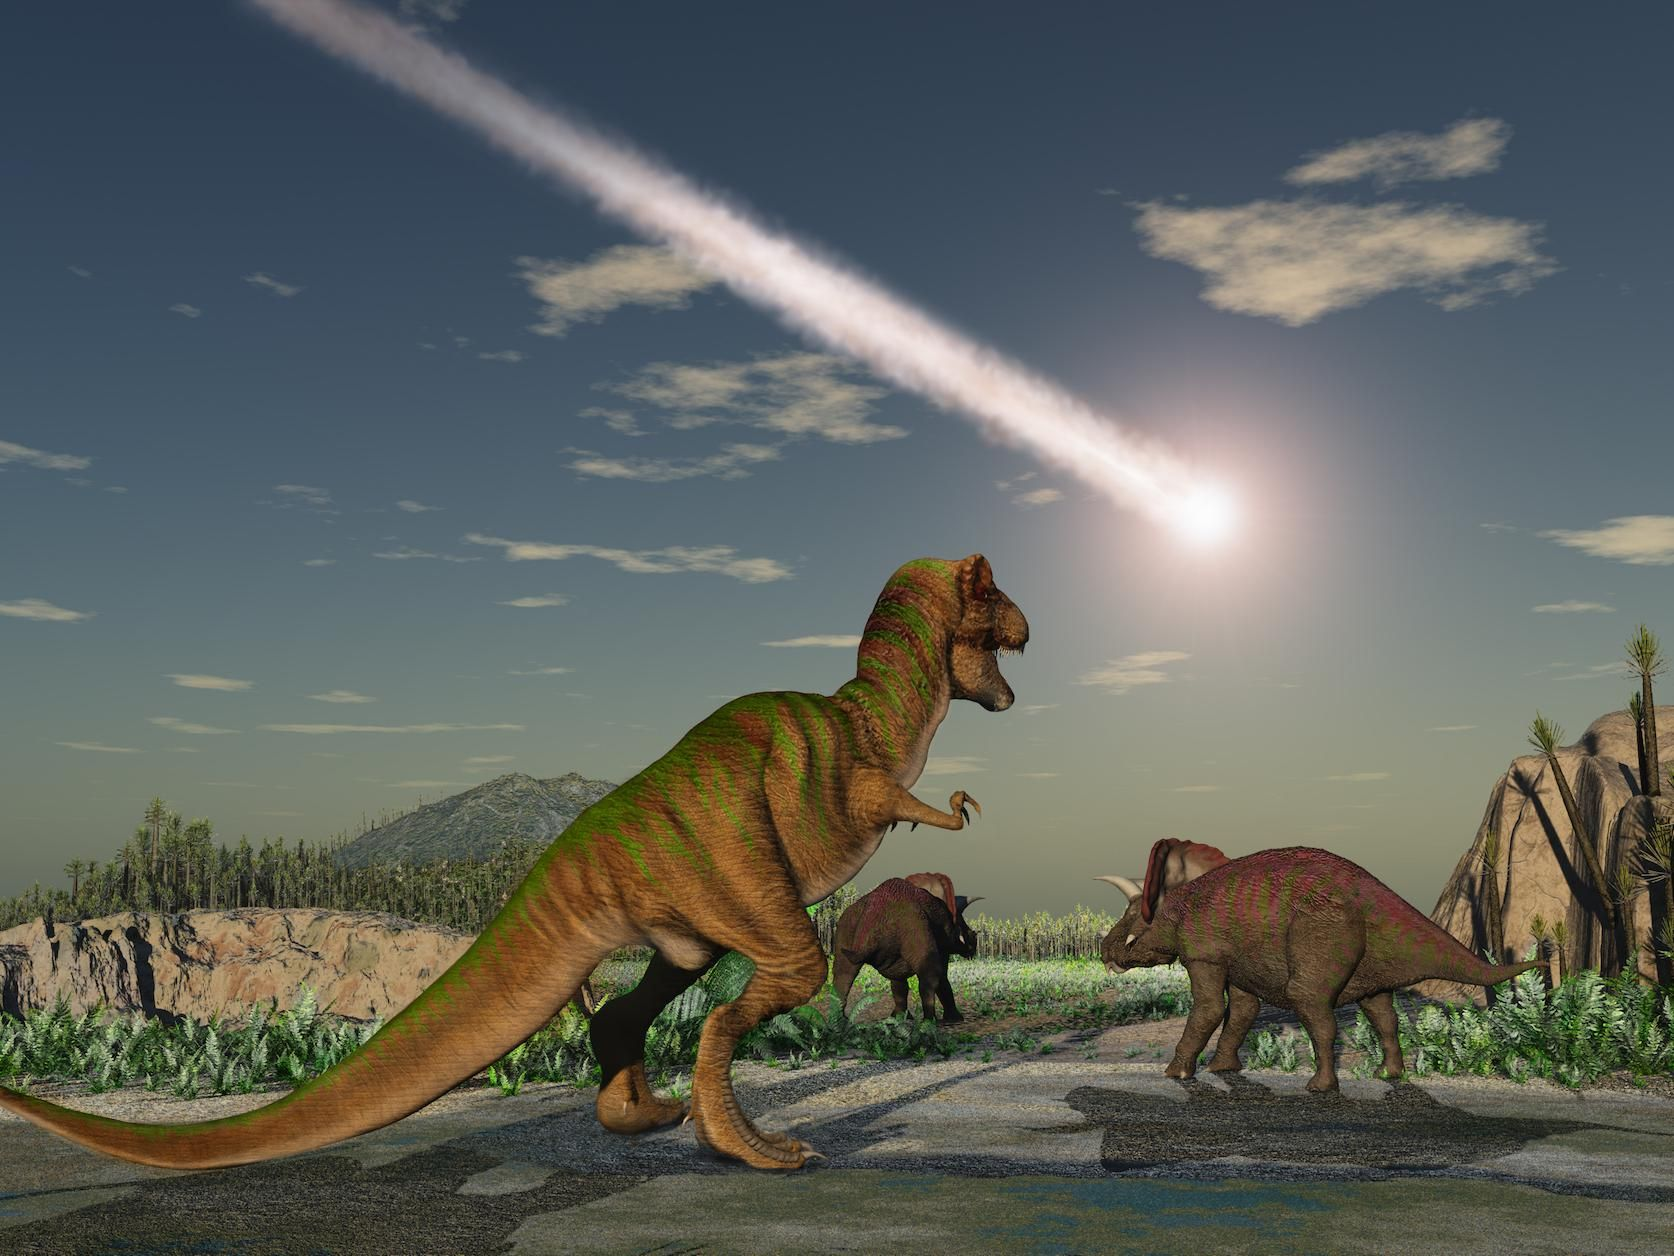 T-Rex shares gender reveal party with friends. Yucatan Peninsula, 66 million years ago.